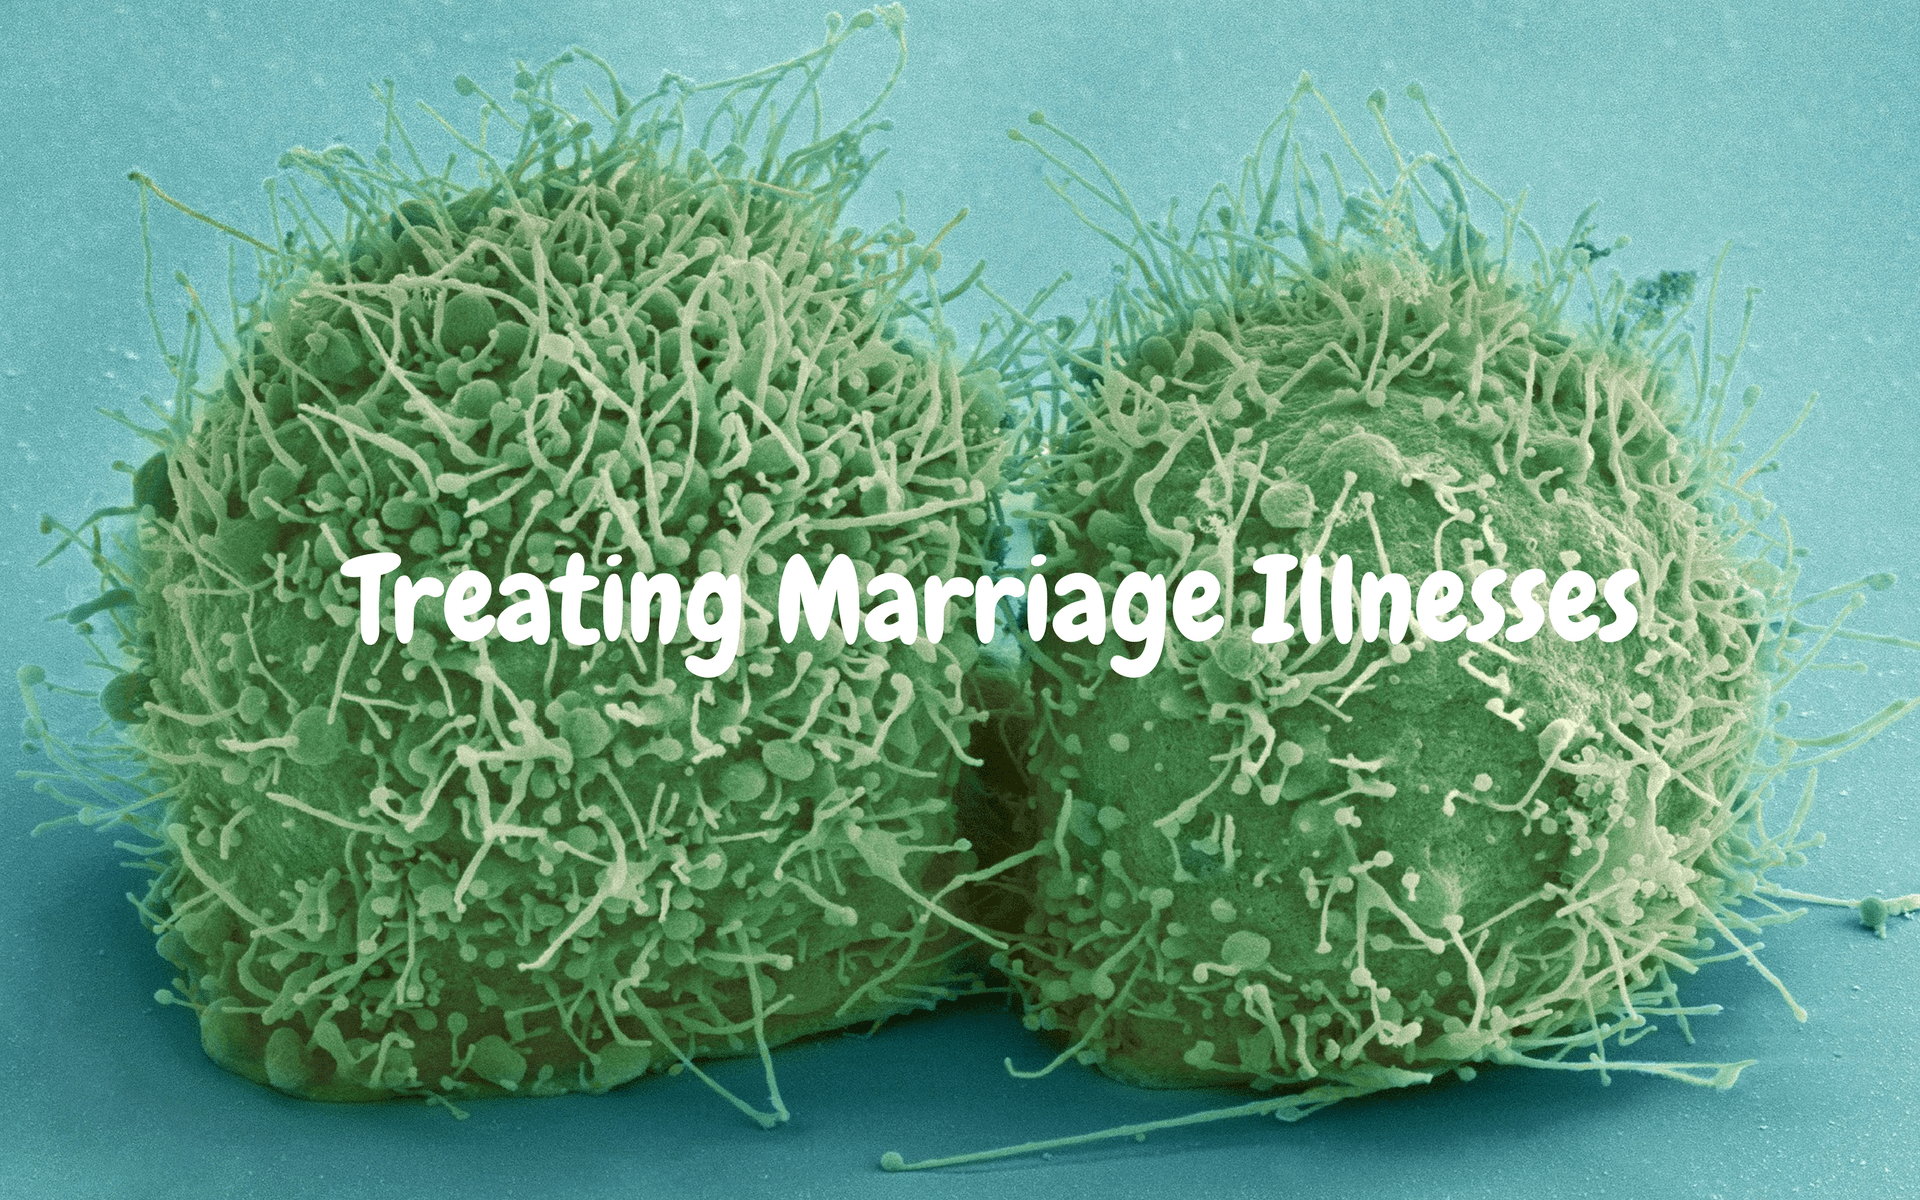 Treating Marriage Illnesses - Pixabay - Canva